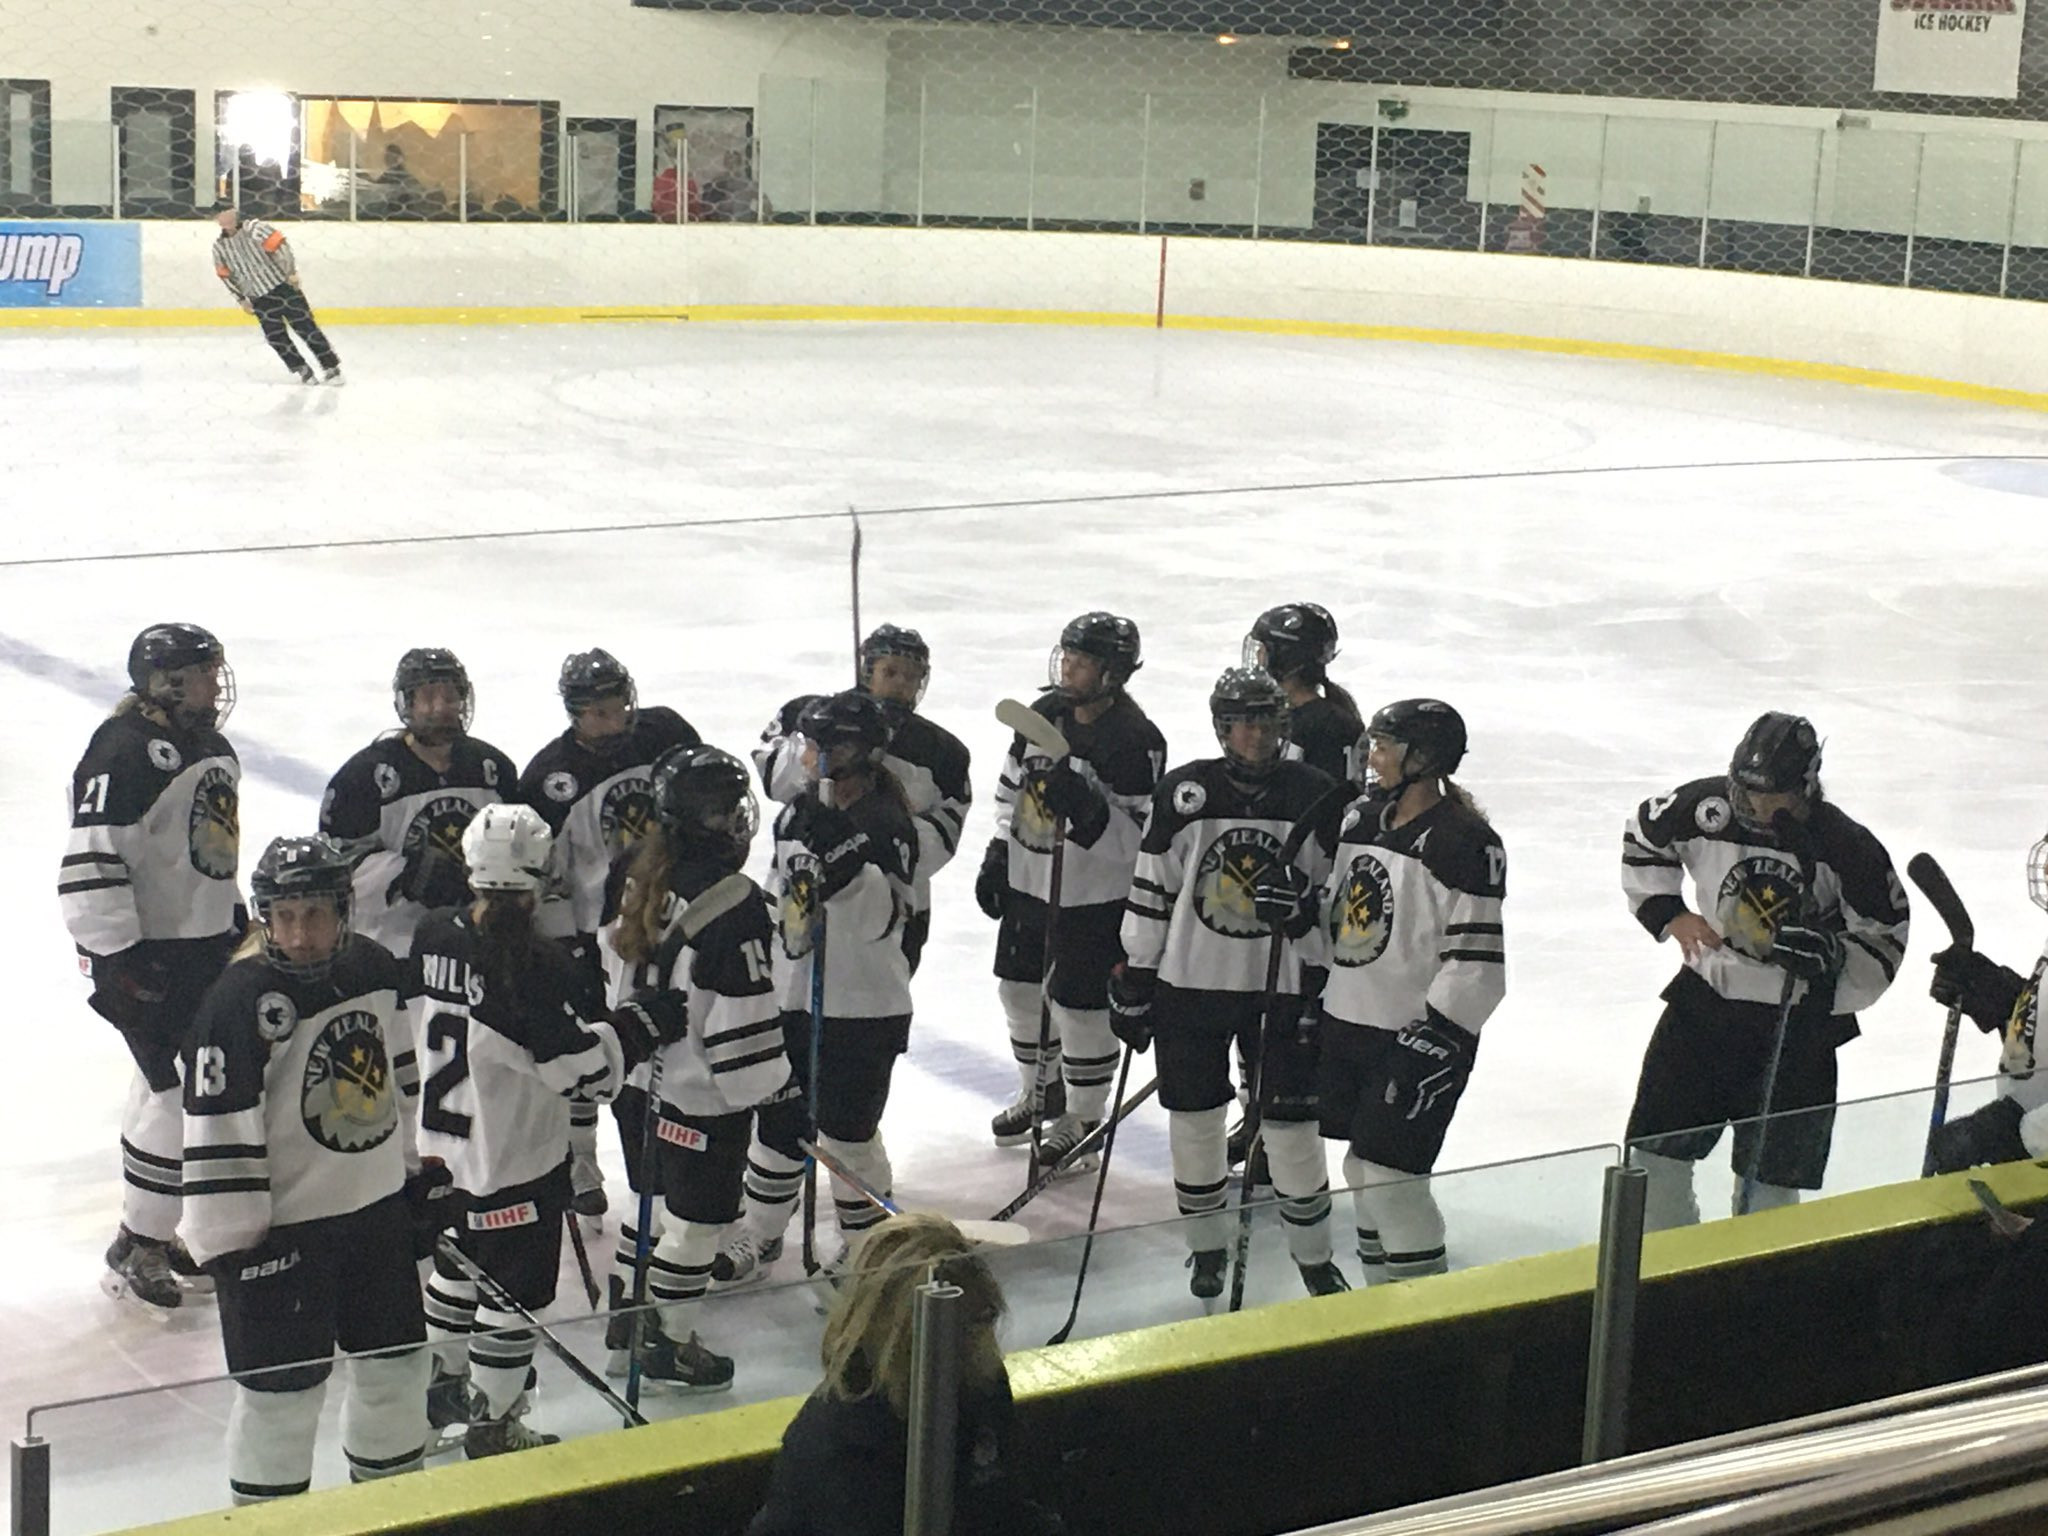 New Zealand's women's ice hockey team has withdrawn from the World Championship ©Twitter/@Colin_A_Surfer